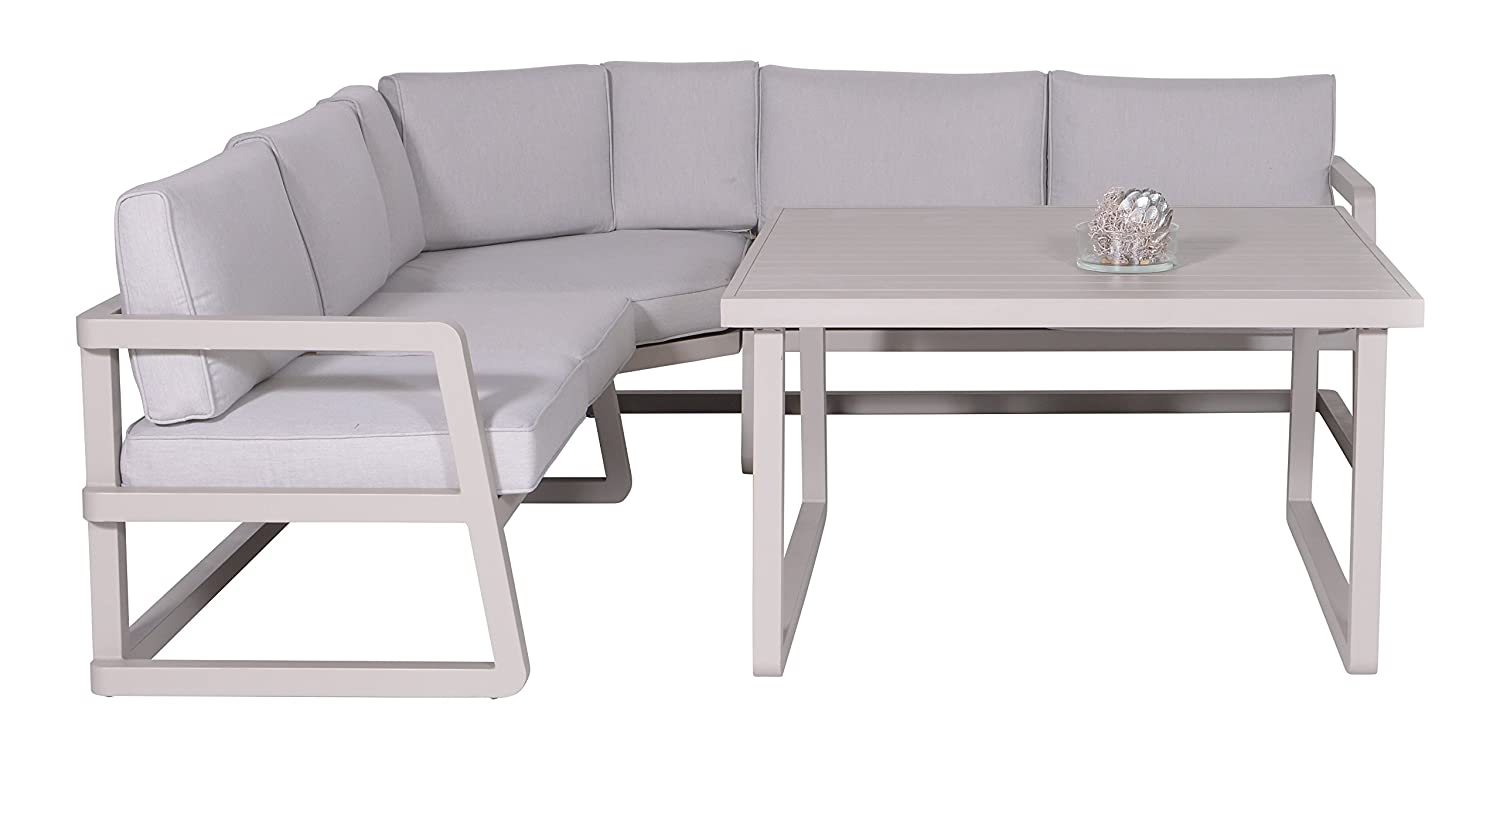 Garden Impressions 10310SO Lounge/Dinner Set, 240 x 240 x 64 cm, Grau